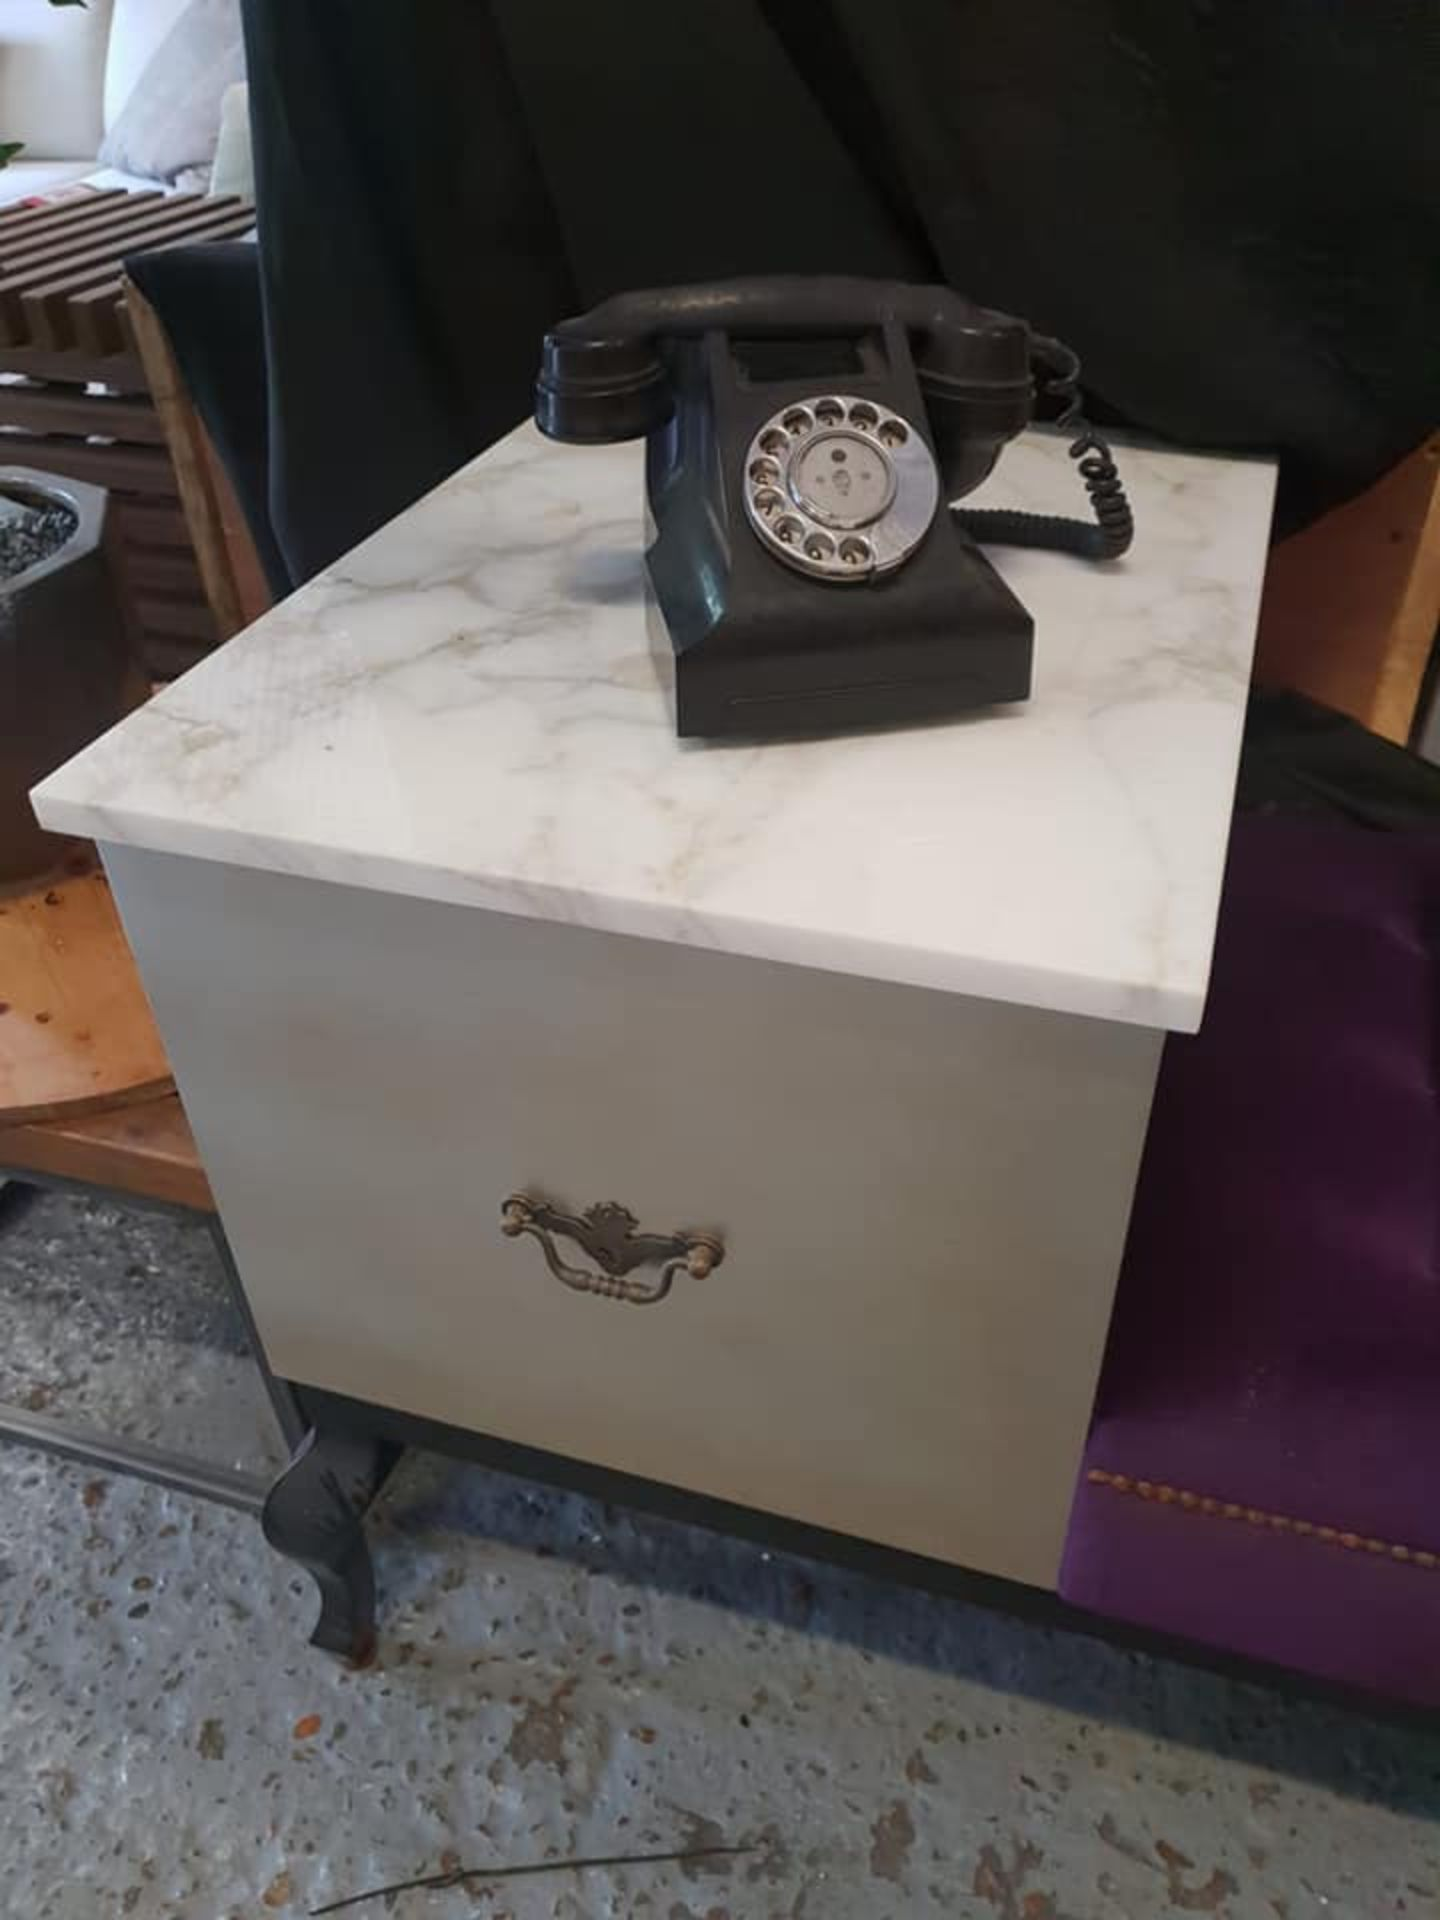 Lot 57 - Telephone Table With Seat - Upholstered Tufted Bench With Queen Anne Style Legs Marble Top And